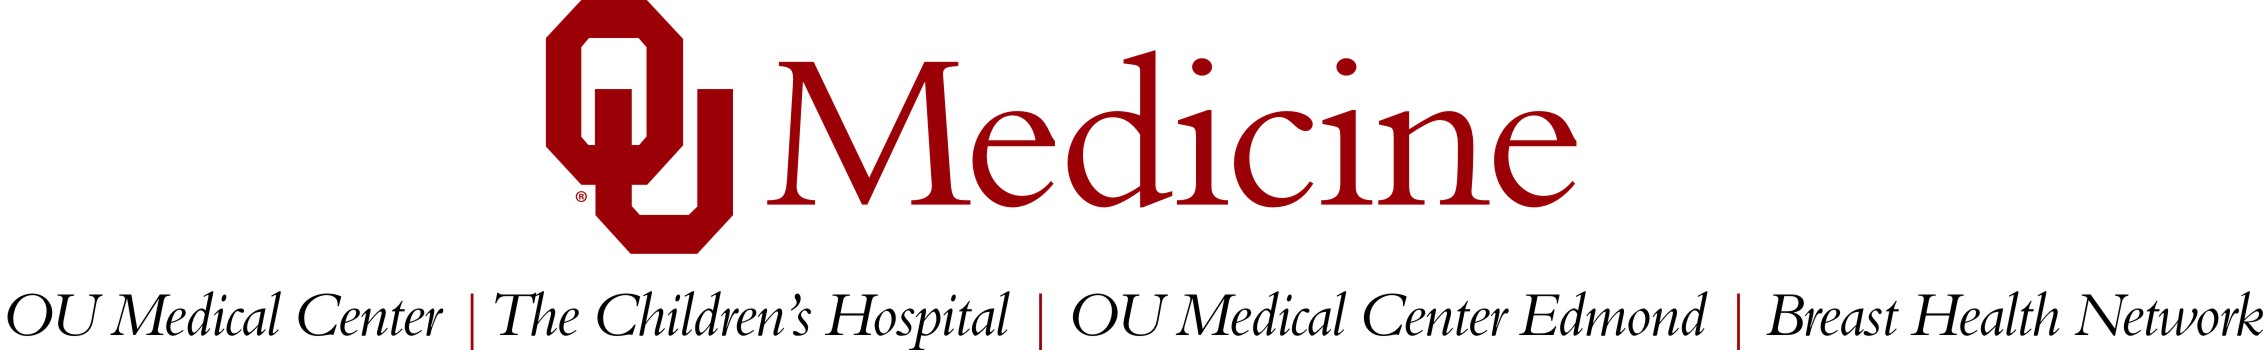 NEW - OU MEDICINE with facilities (horizontal)